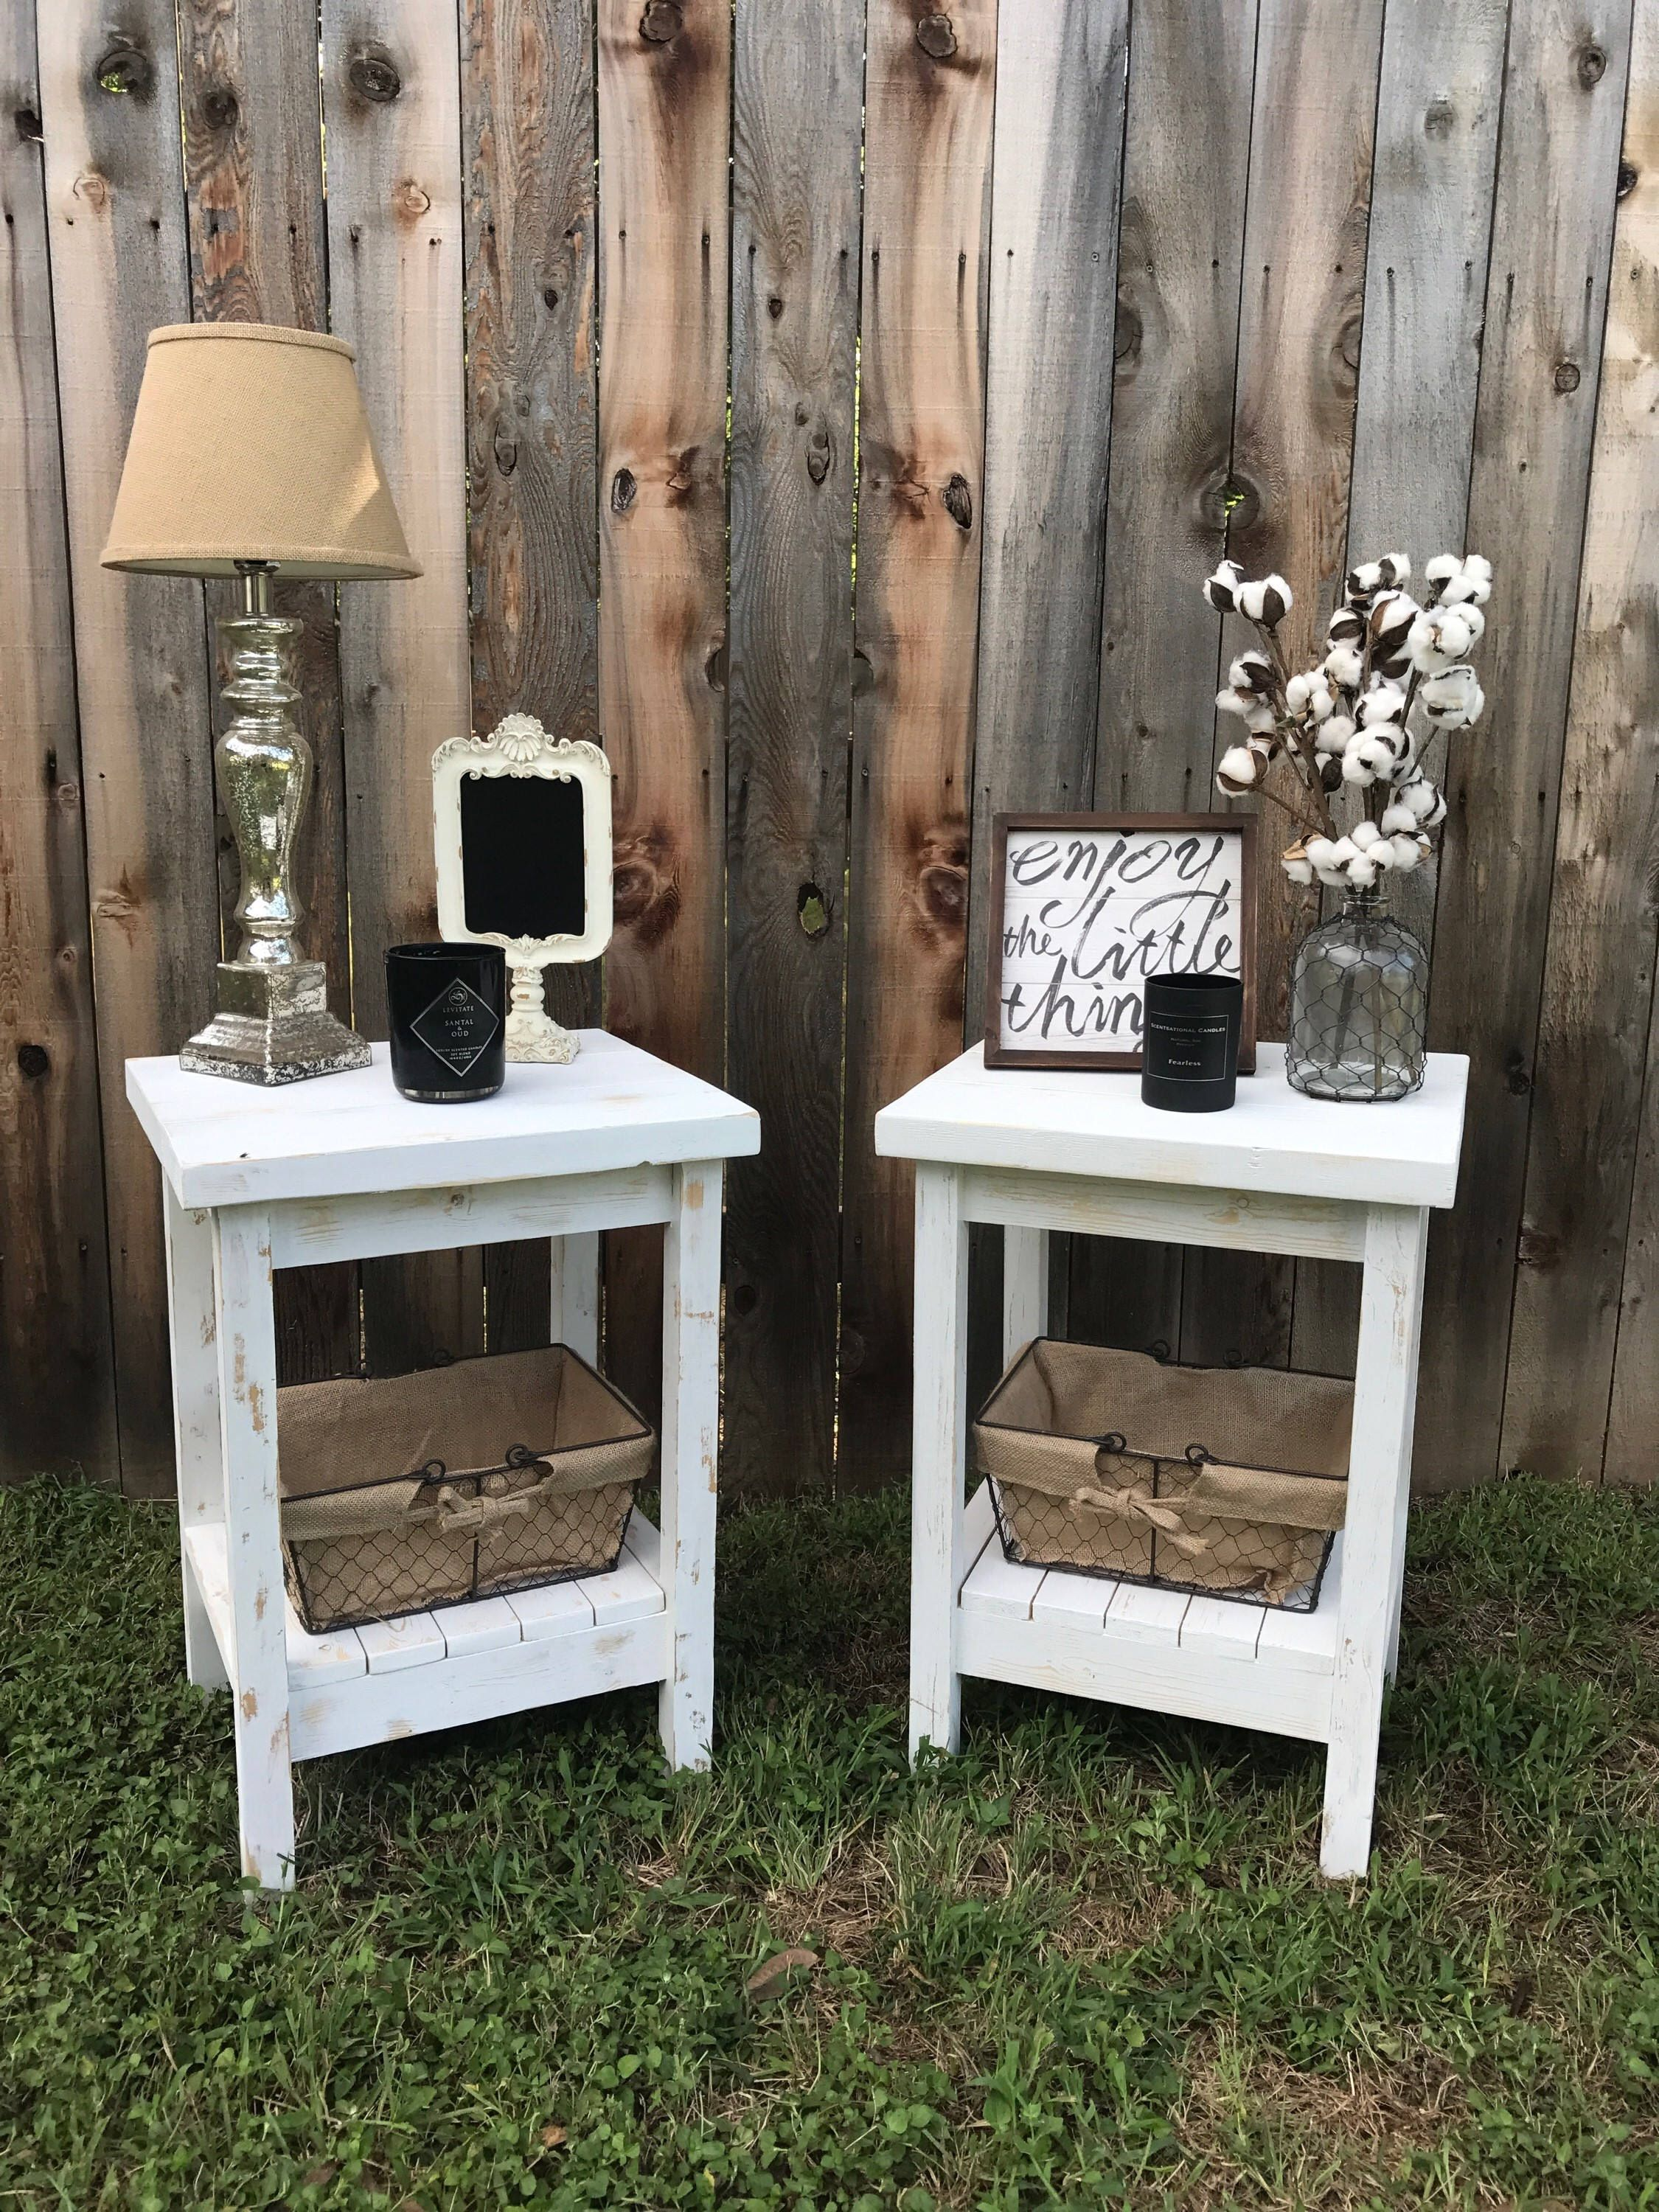 pin kristen toney bedroom home decor farmhouse end table night stand fraleyfurnitureco etsy homesense sets lazy boy mirrors log nightstands heritage tall lamps laura ashley super